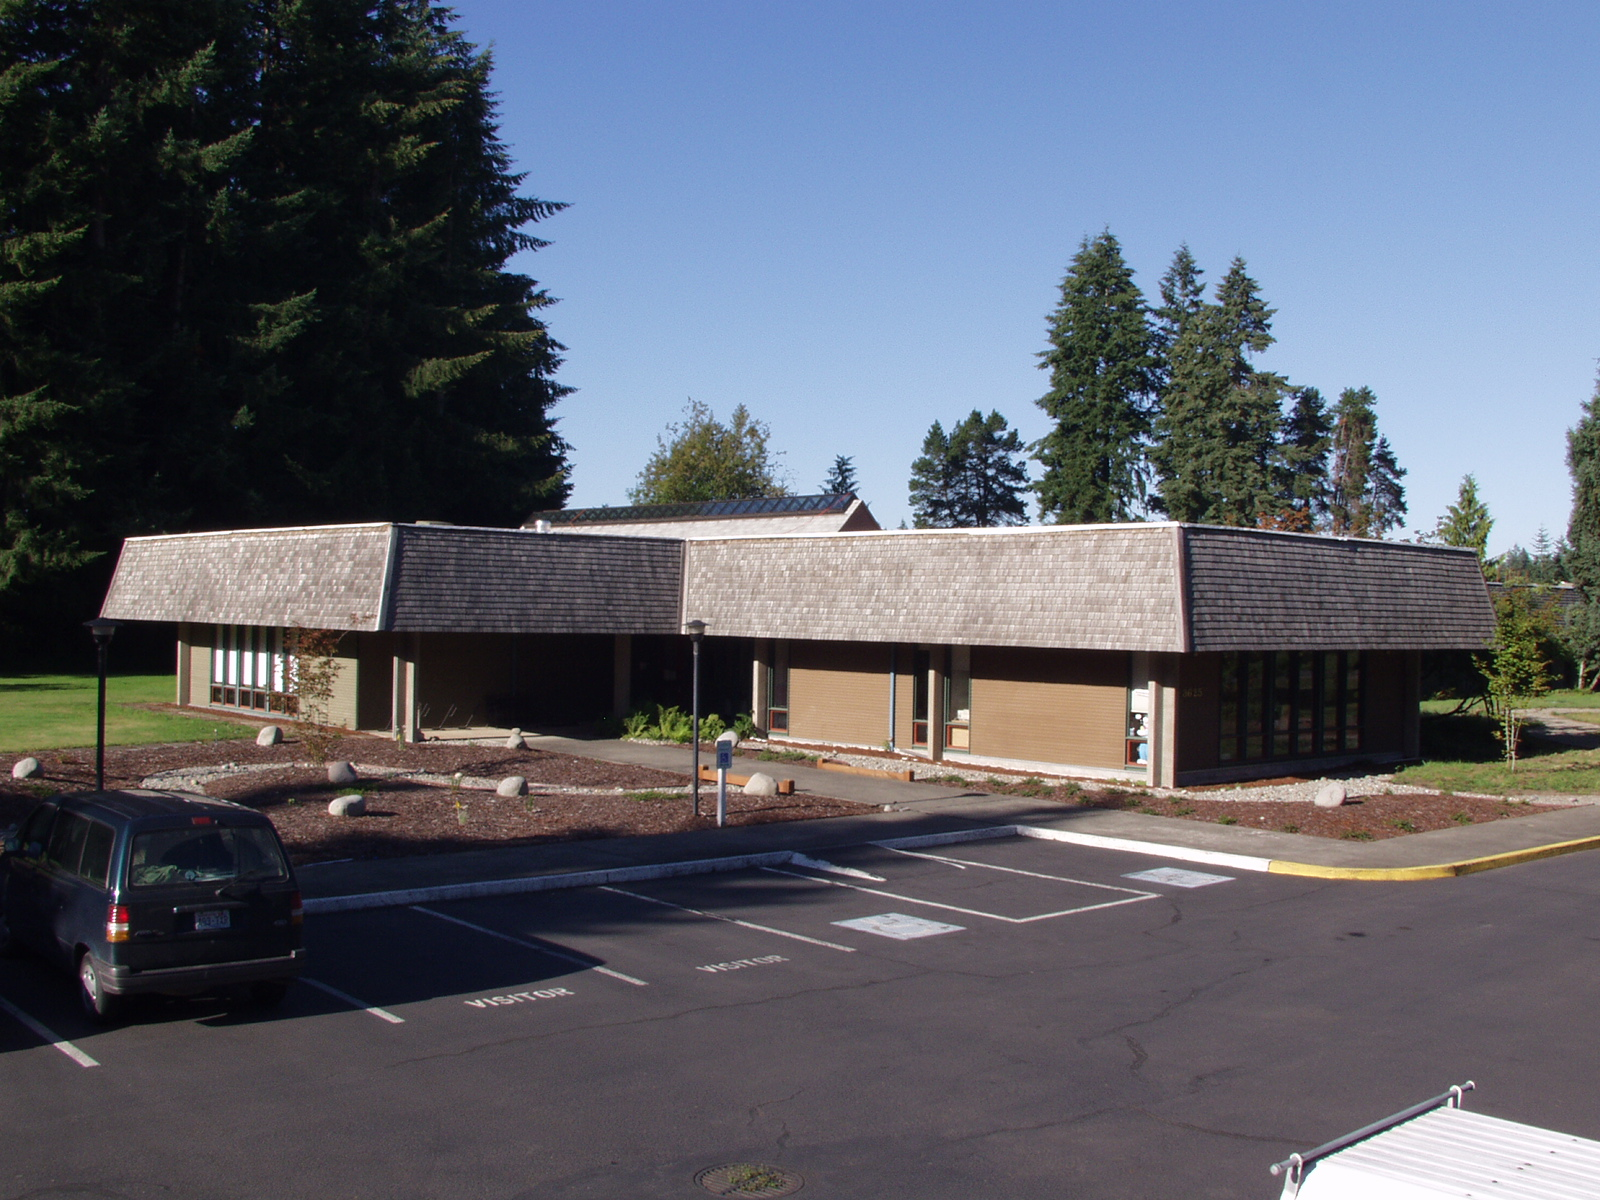 Front view of the Olympia Forestry Science Laboratory, around 2007.